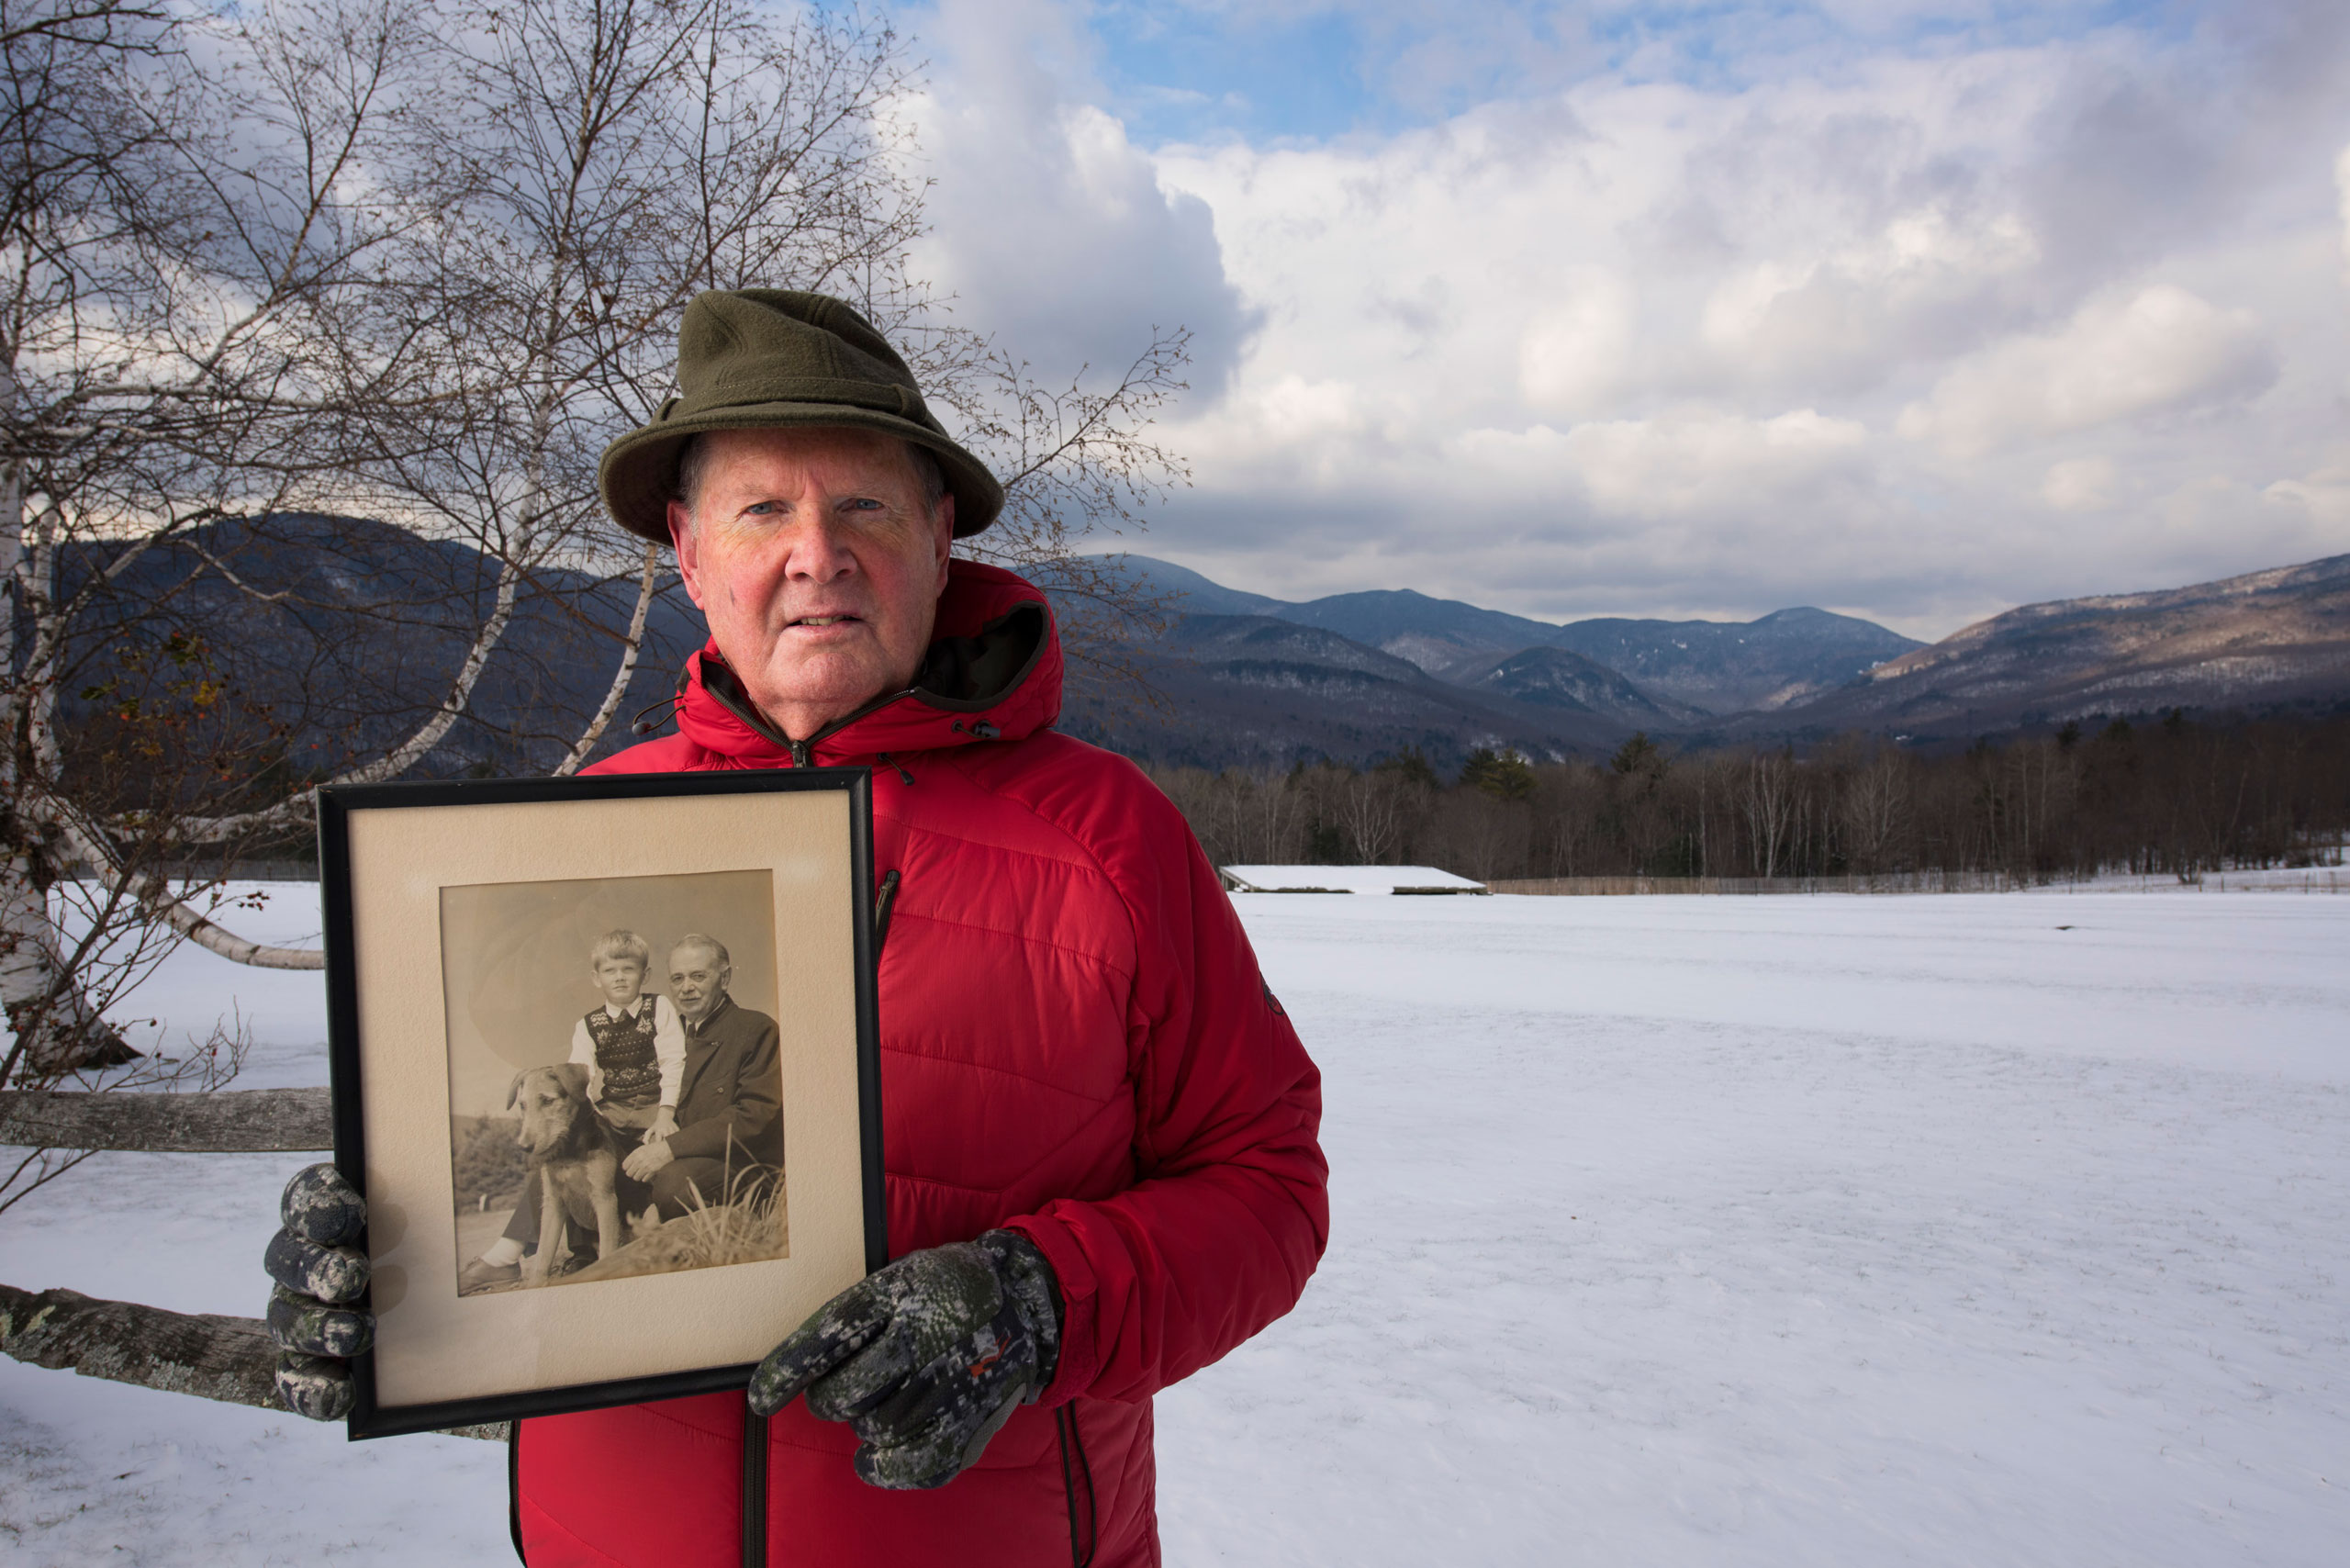 Portrait of Johannes von Trapp at the Trapp Family Lodge, alongside a field where music is performed in warmer weather. He is holding a portrait of his father and himself.